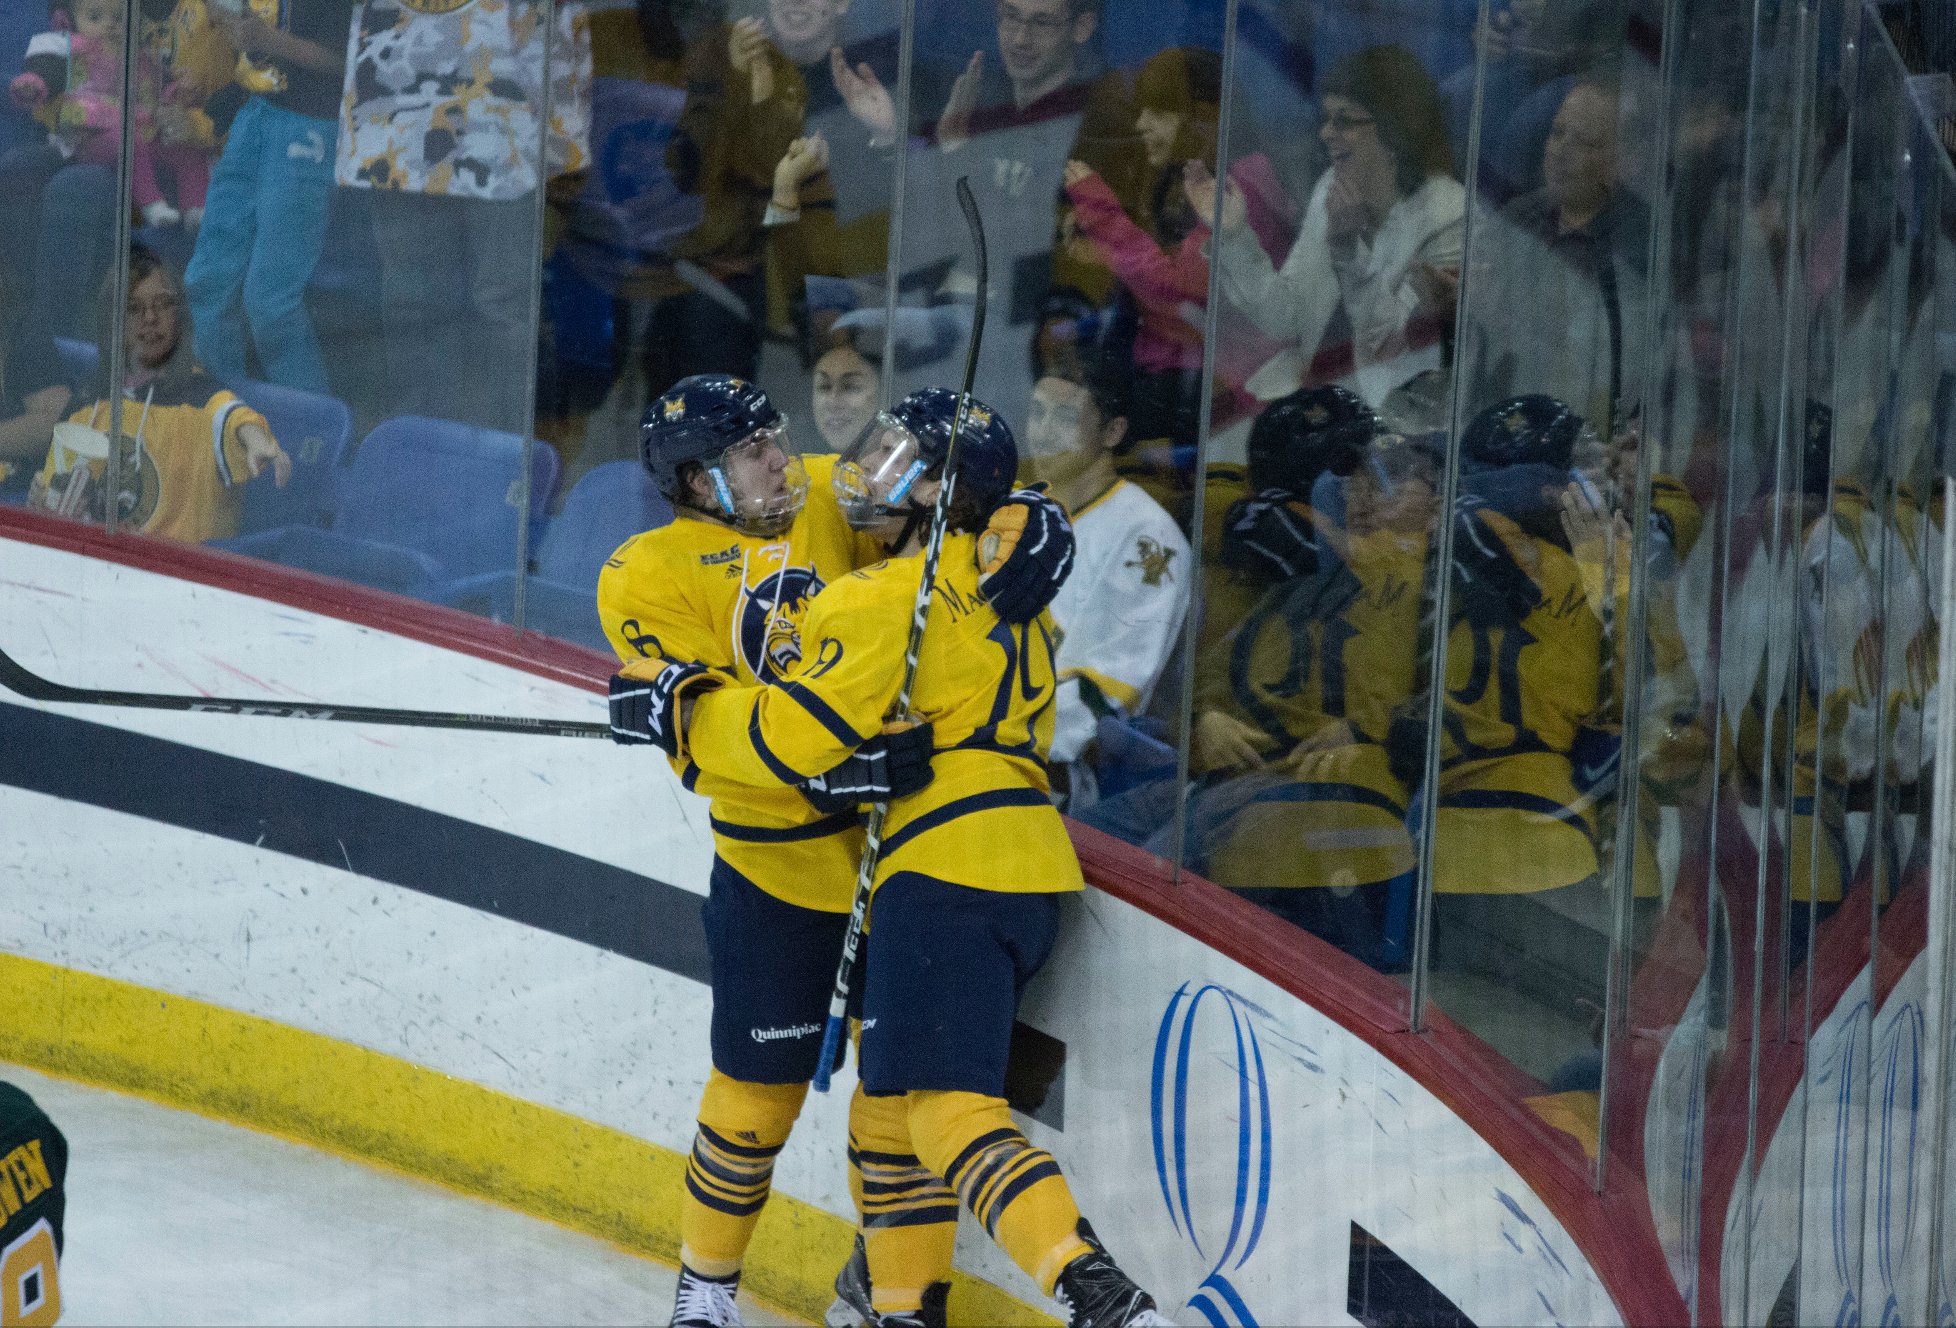 Quinnipiac men's ice hockey earns first win of the season